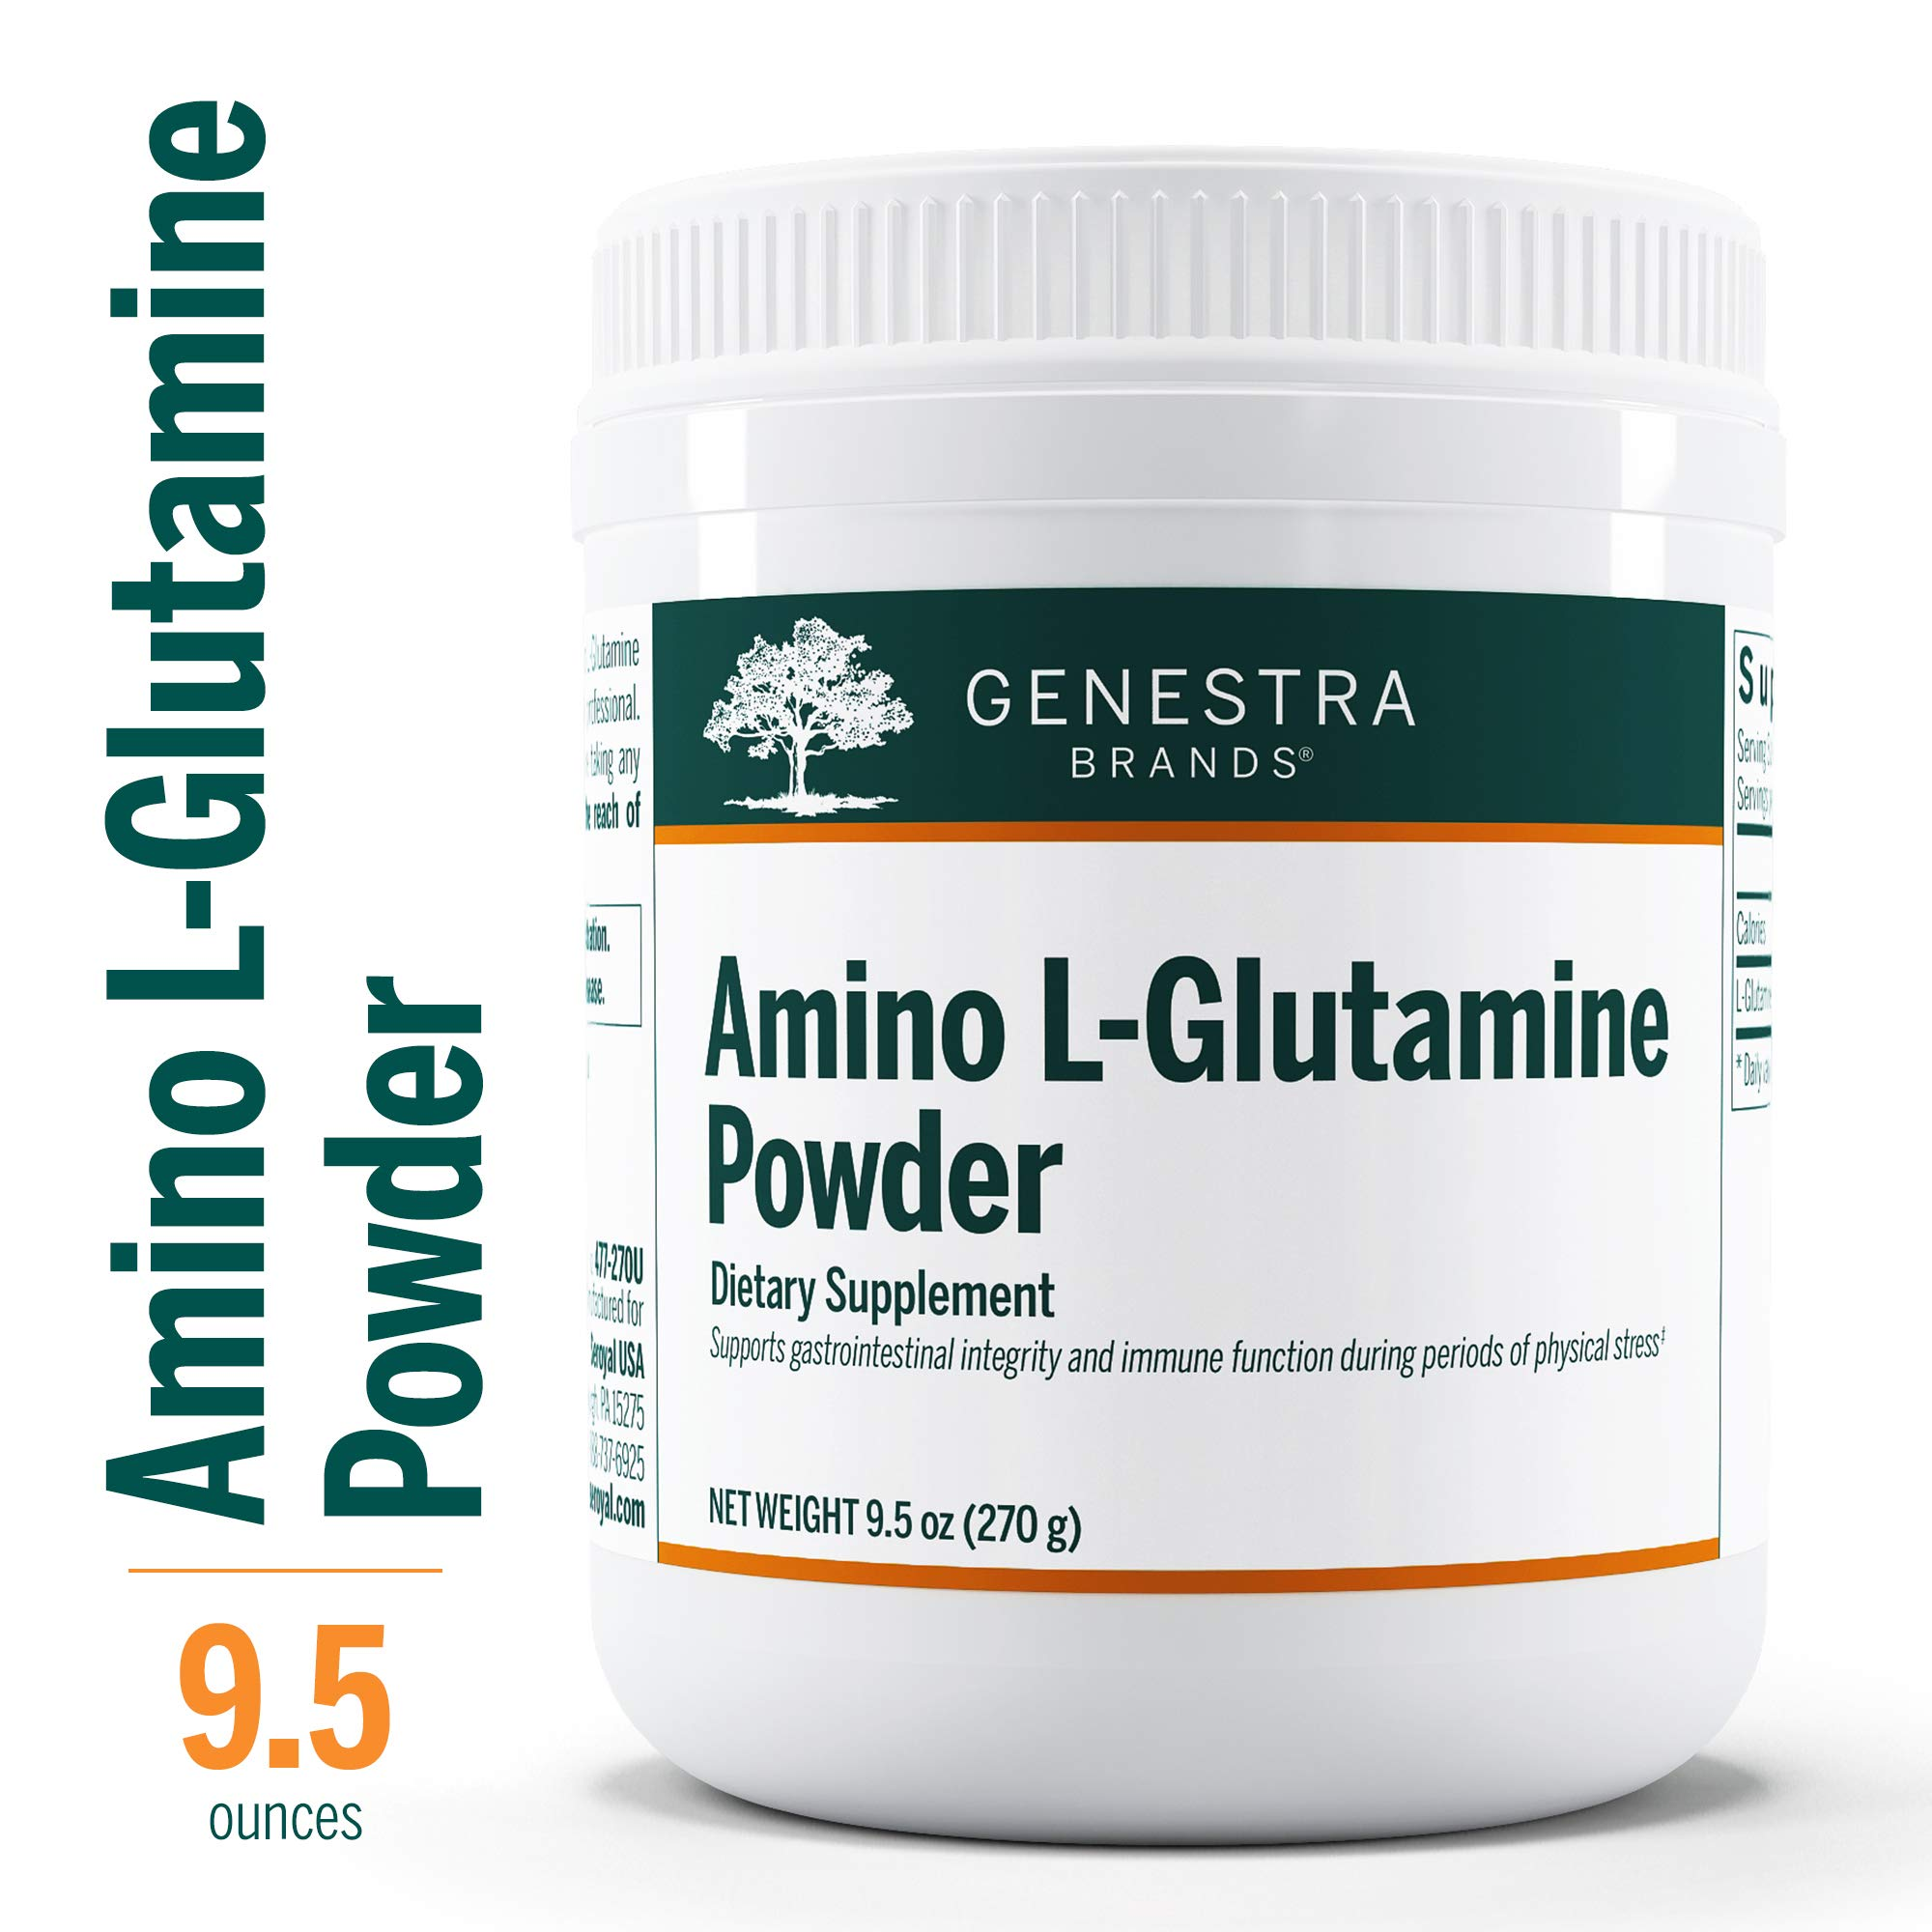 Genestra Brands - Amino L-Glutamine Powder - Amino Acid Supplement for GI and Immune Health* - 9.5 oz. by Genestra Brands